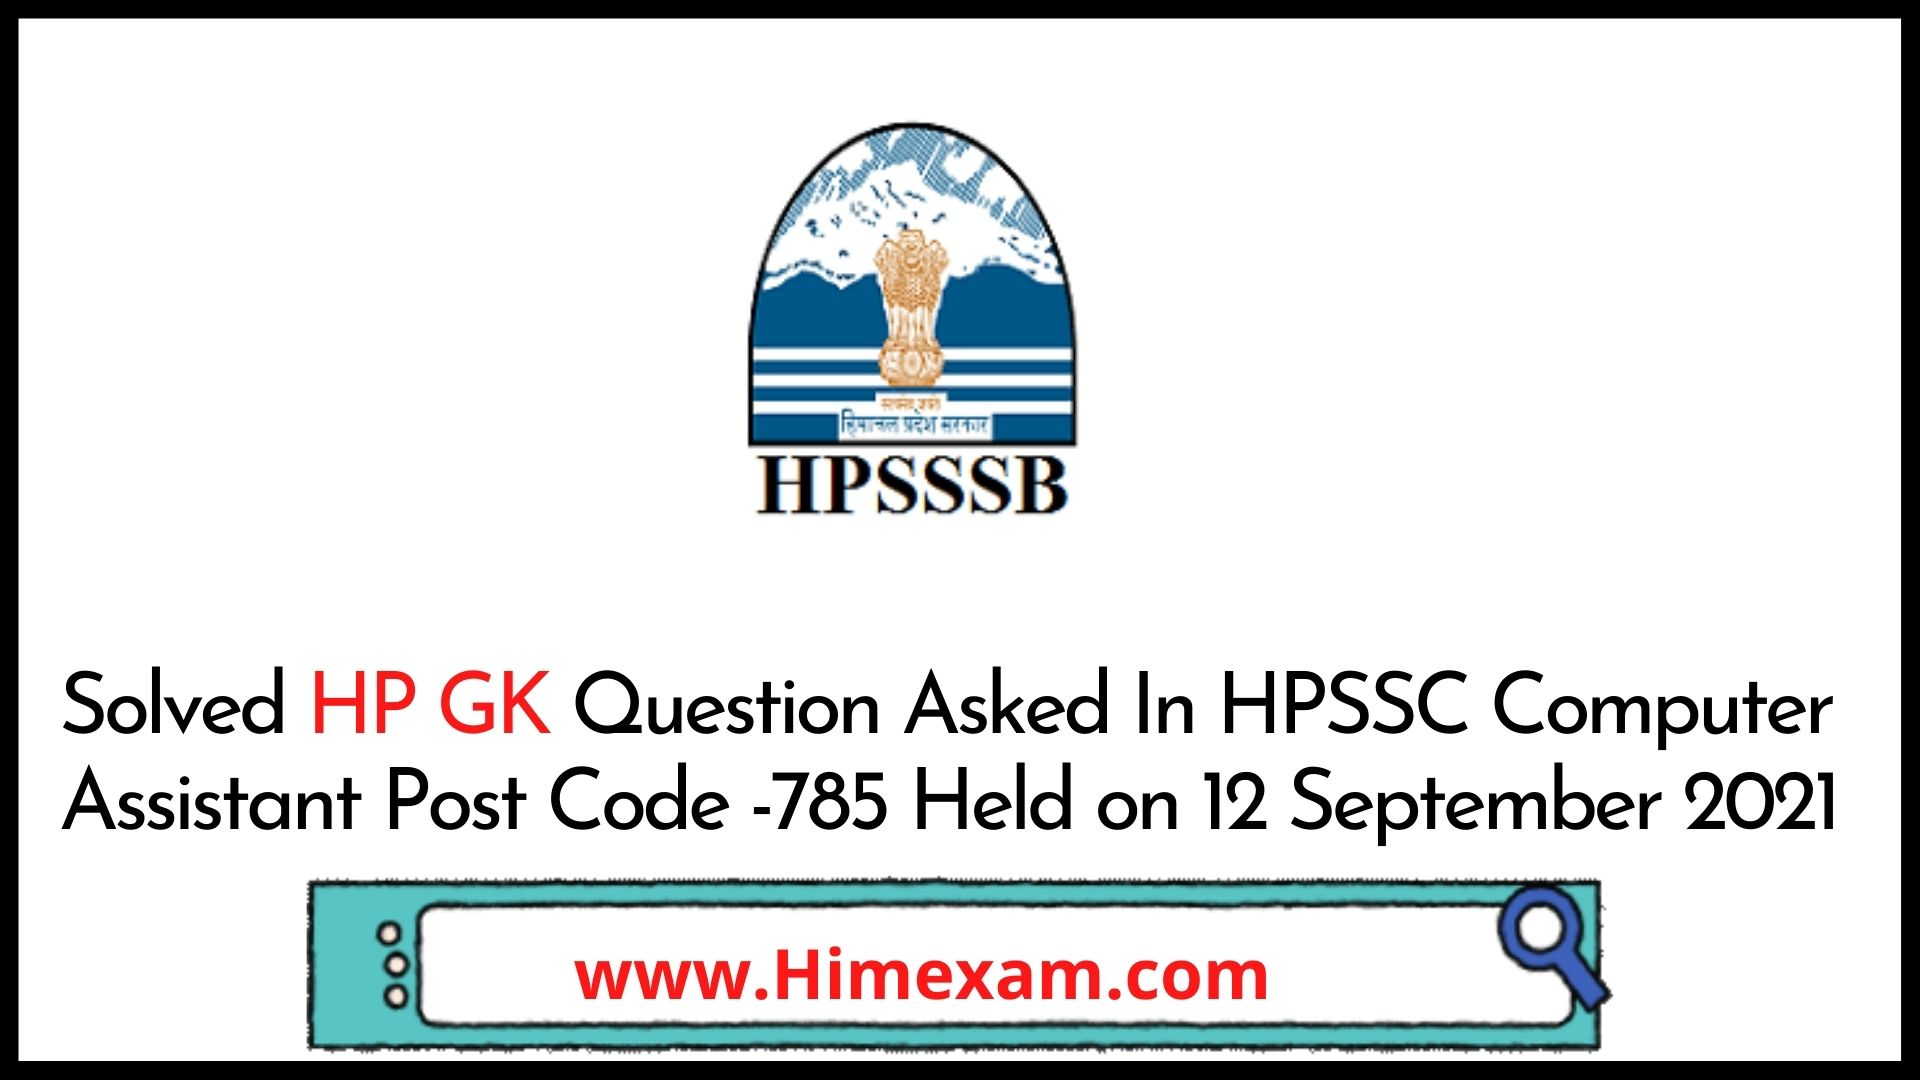 Solved HP GK Question Asked In HPSSC Computer Assistant Post Code -785 Held on 12 September 2021